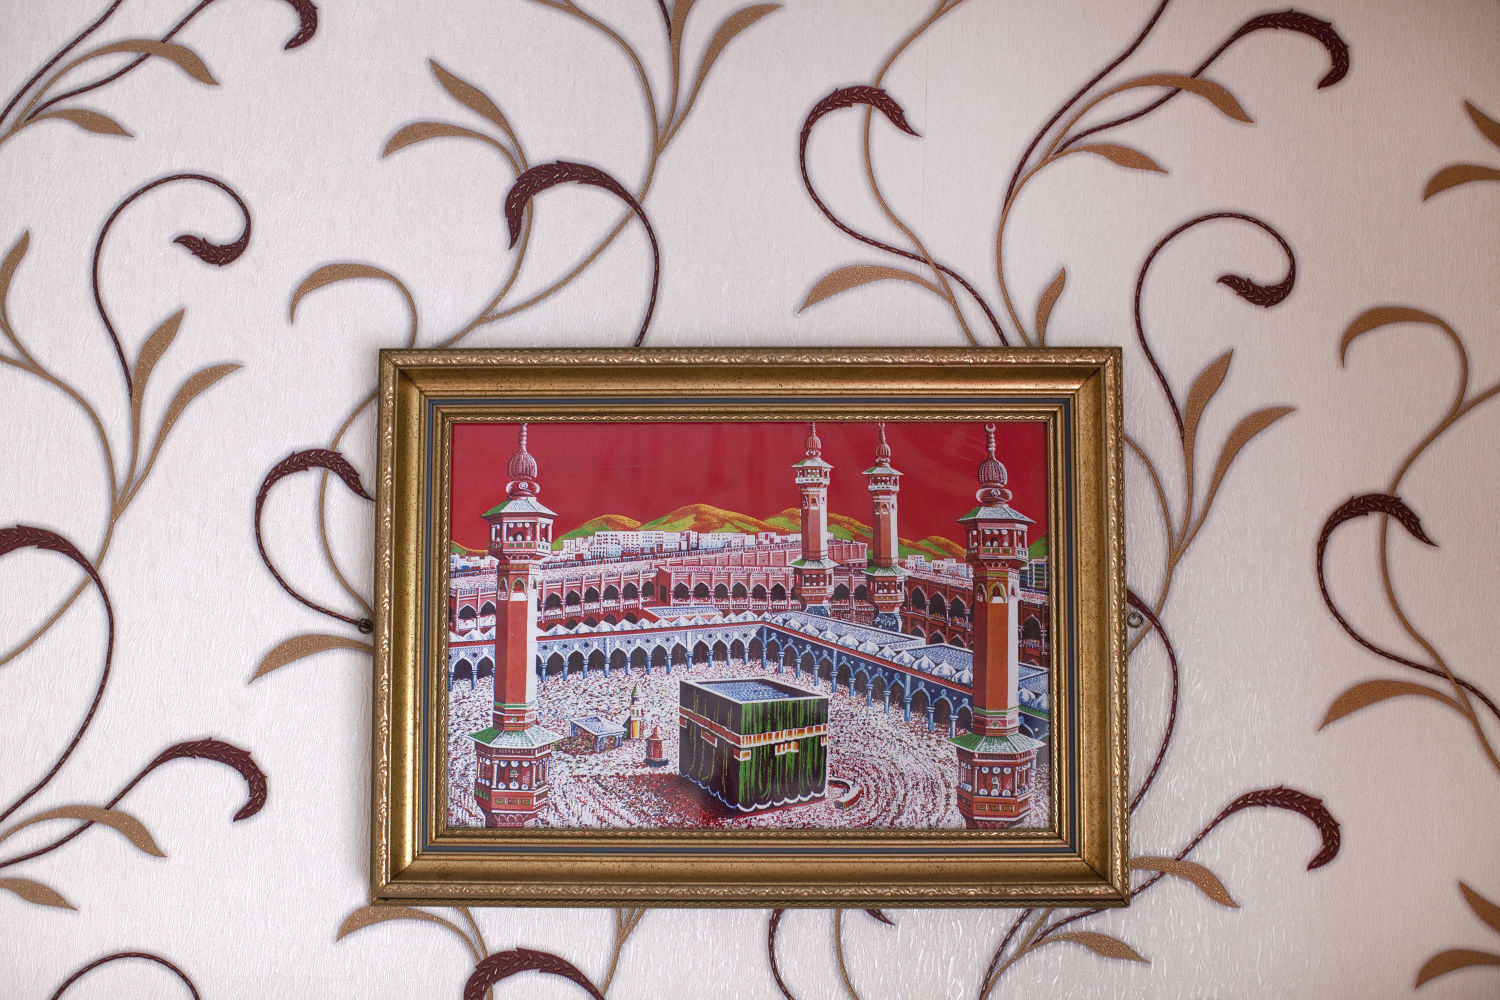 Mecca Medina sourounded by red and gold © Mahtab Hussain - The Quiet Town of Tipton